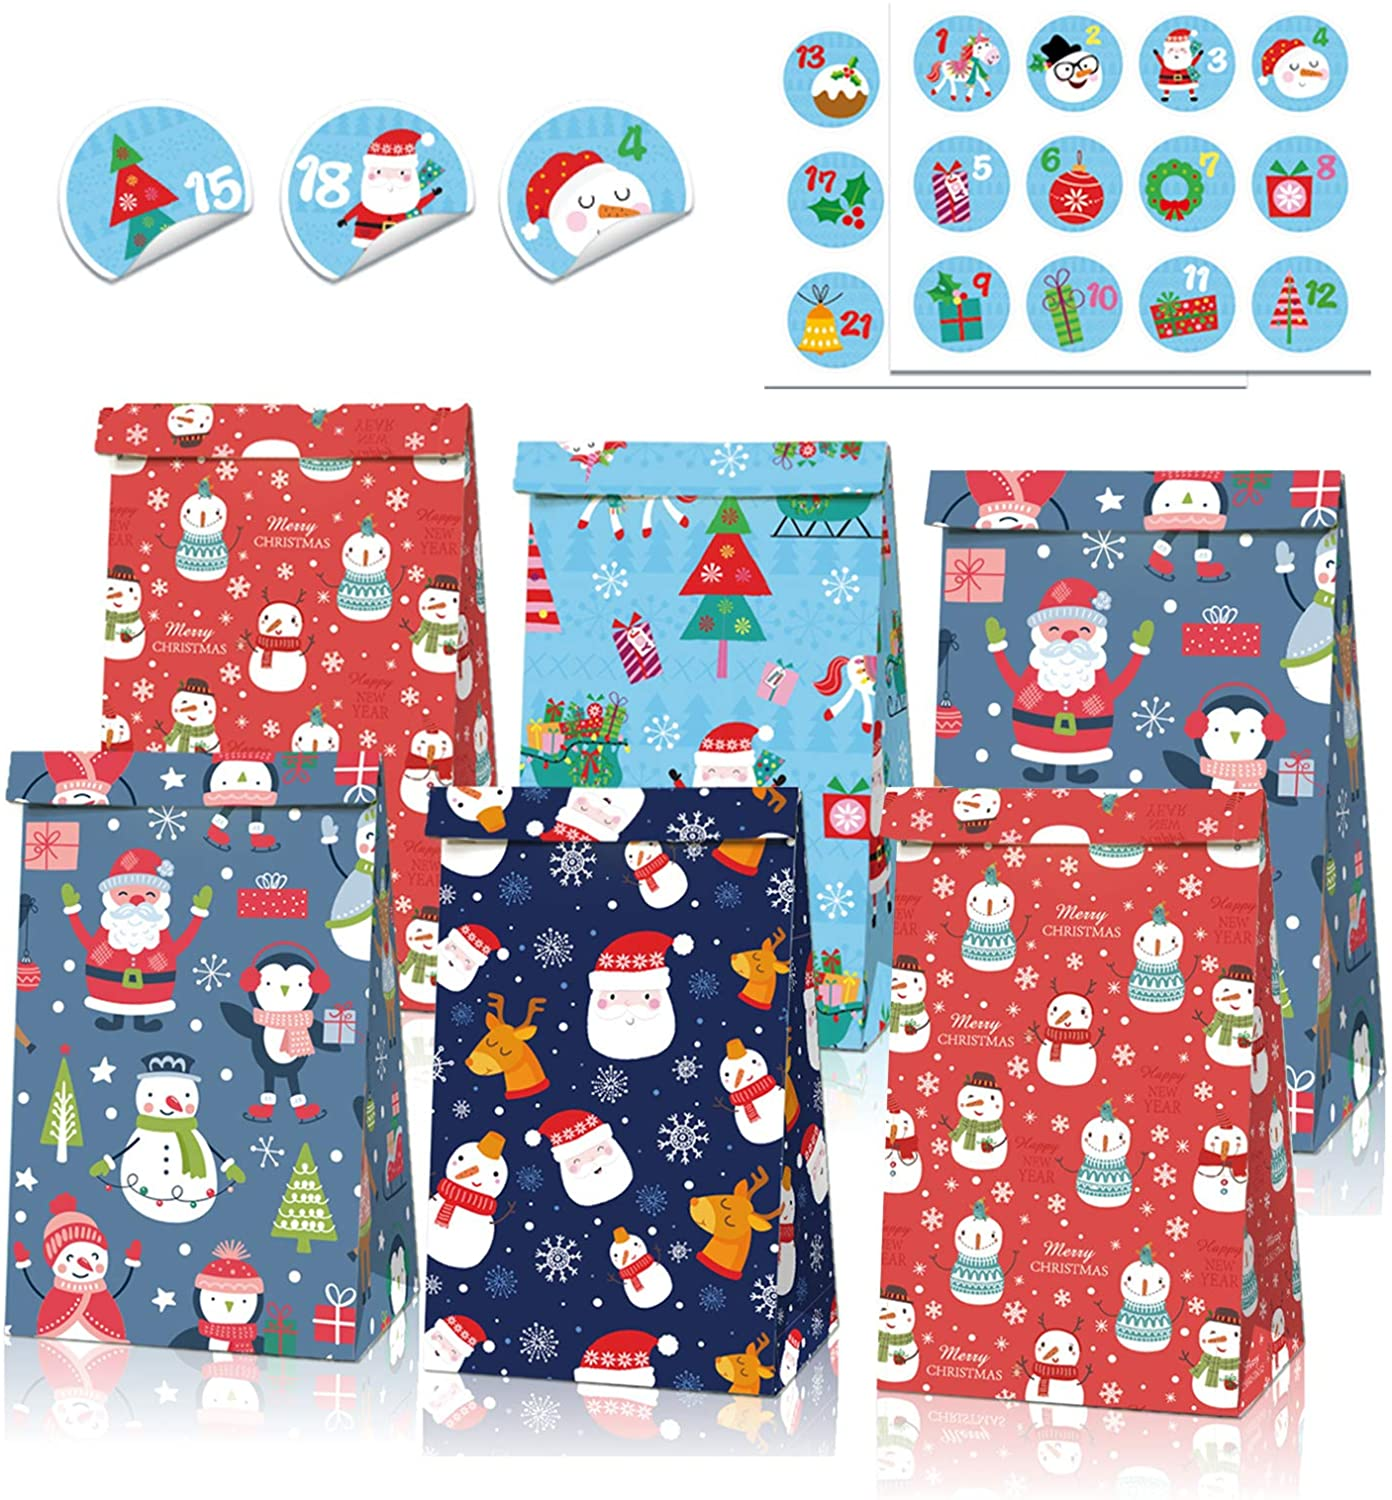 12PCS Christmas Kraft Paper Gift Bags, 4 Styles Kraft Gift Bags with Cute Sealing Stickers, Christmas Wrapping Paper Bags Set Xmas Supplies